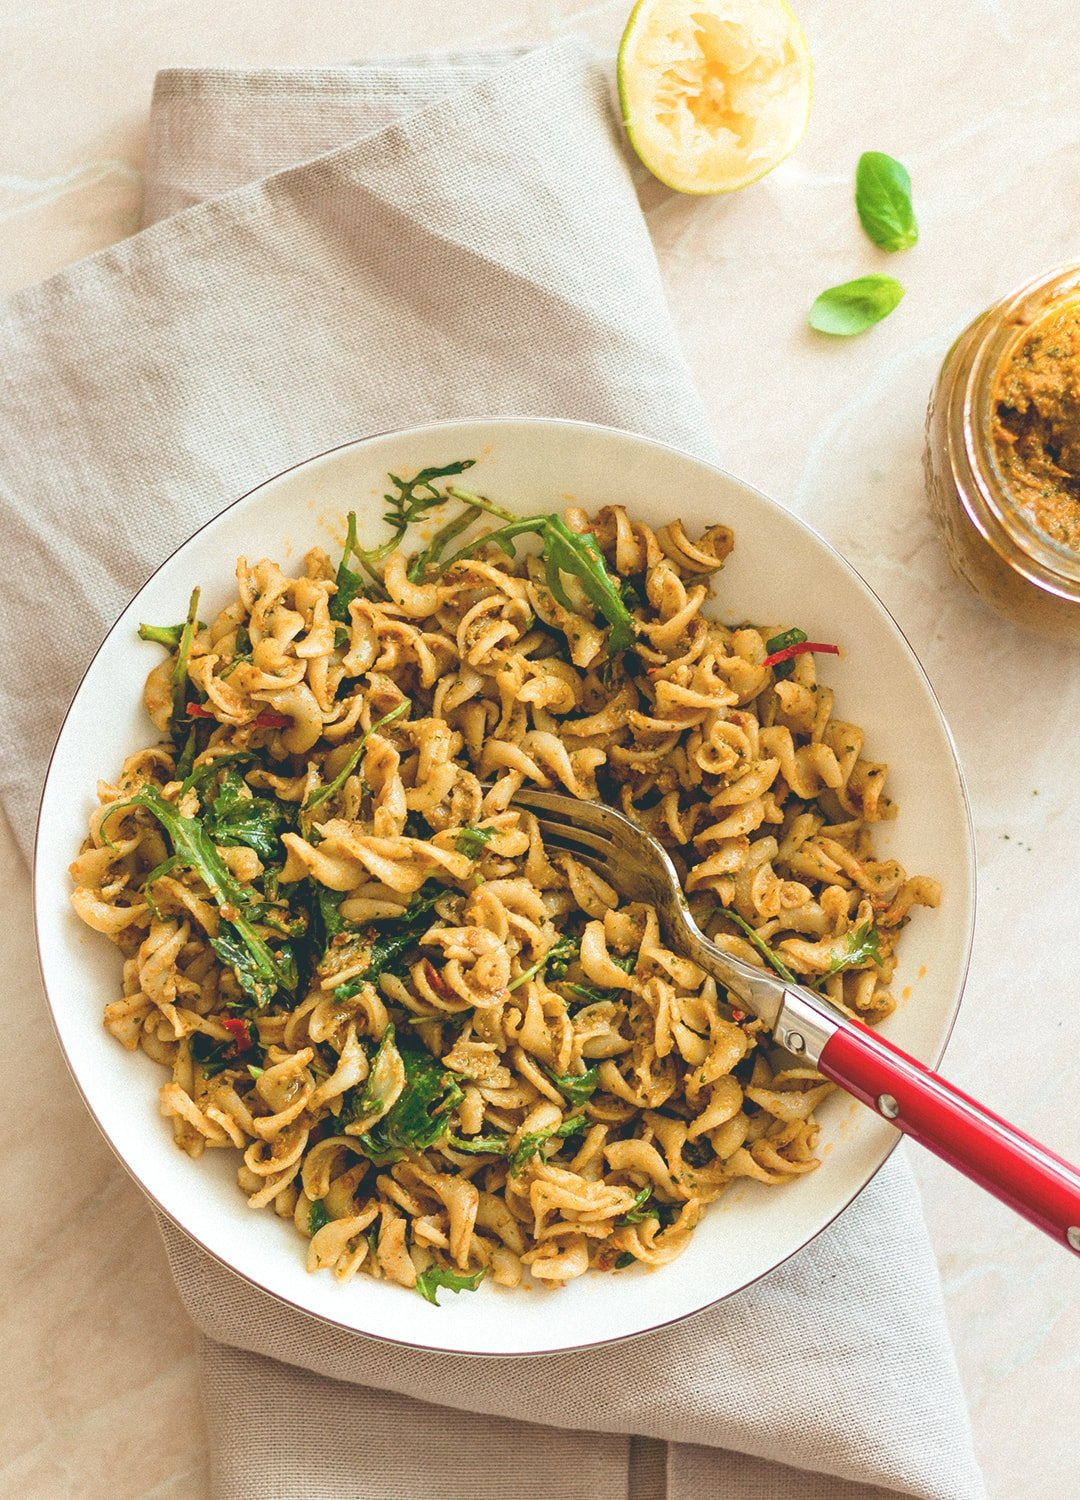 Sundried Tomato Pesto Pasta (vegan, gluten-free) - brown rice pasta, sundried tomatoes, roasted chili, basil, toasted pine nuts, garlic, and arugula. I love this pesto, it's SO delicious! | thehealthfulideas.com